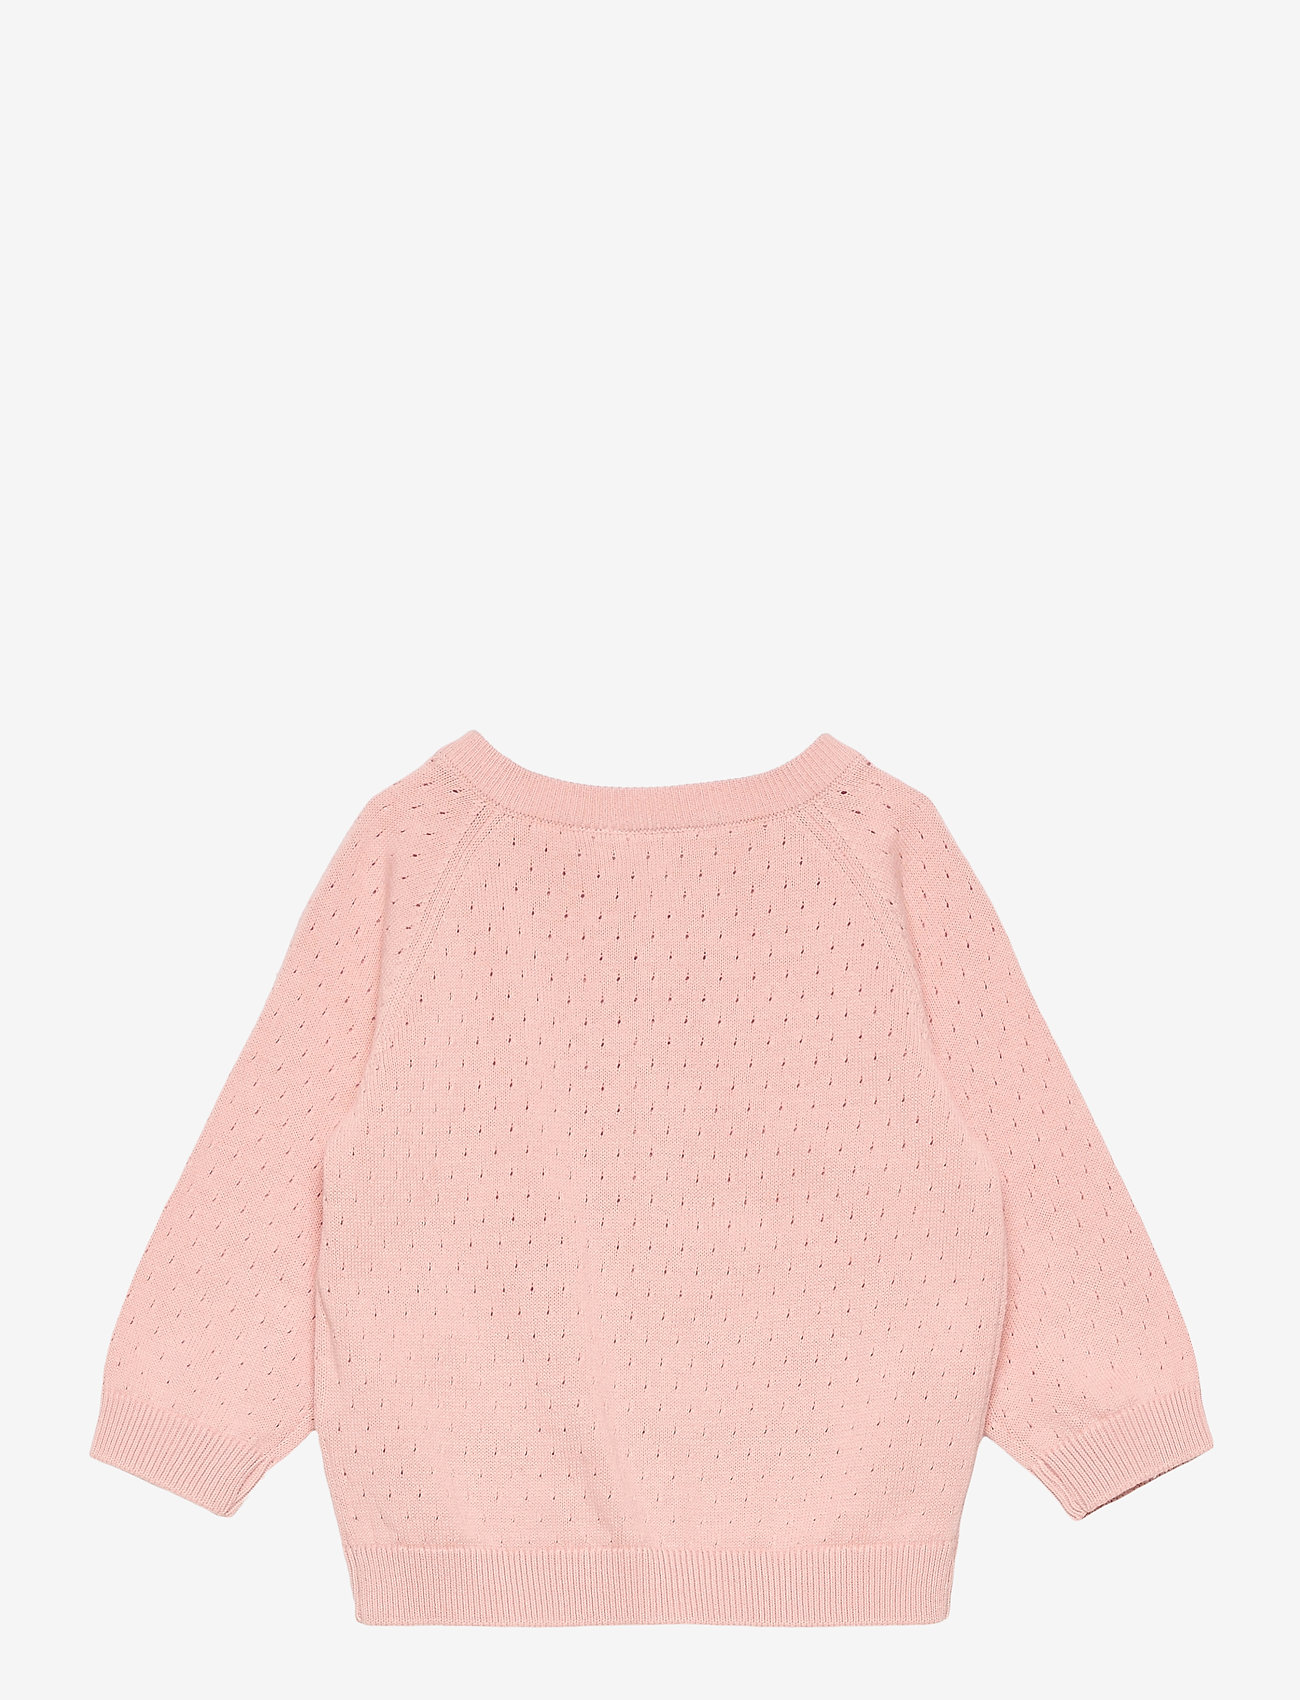 name it - NBFDESMOLLY LS KNIT CARD - gilets - peach whip - 1